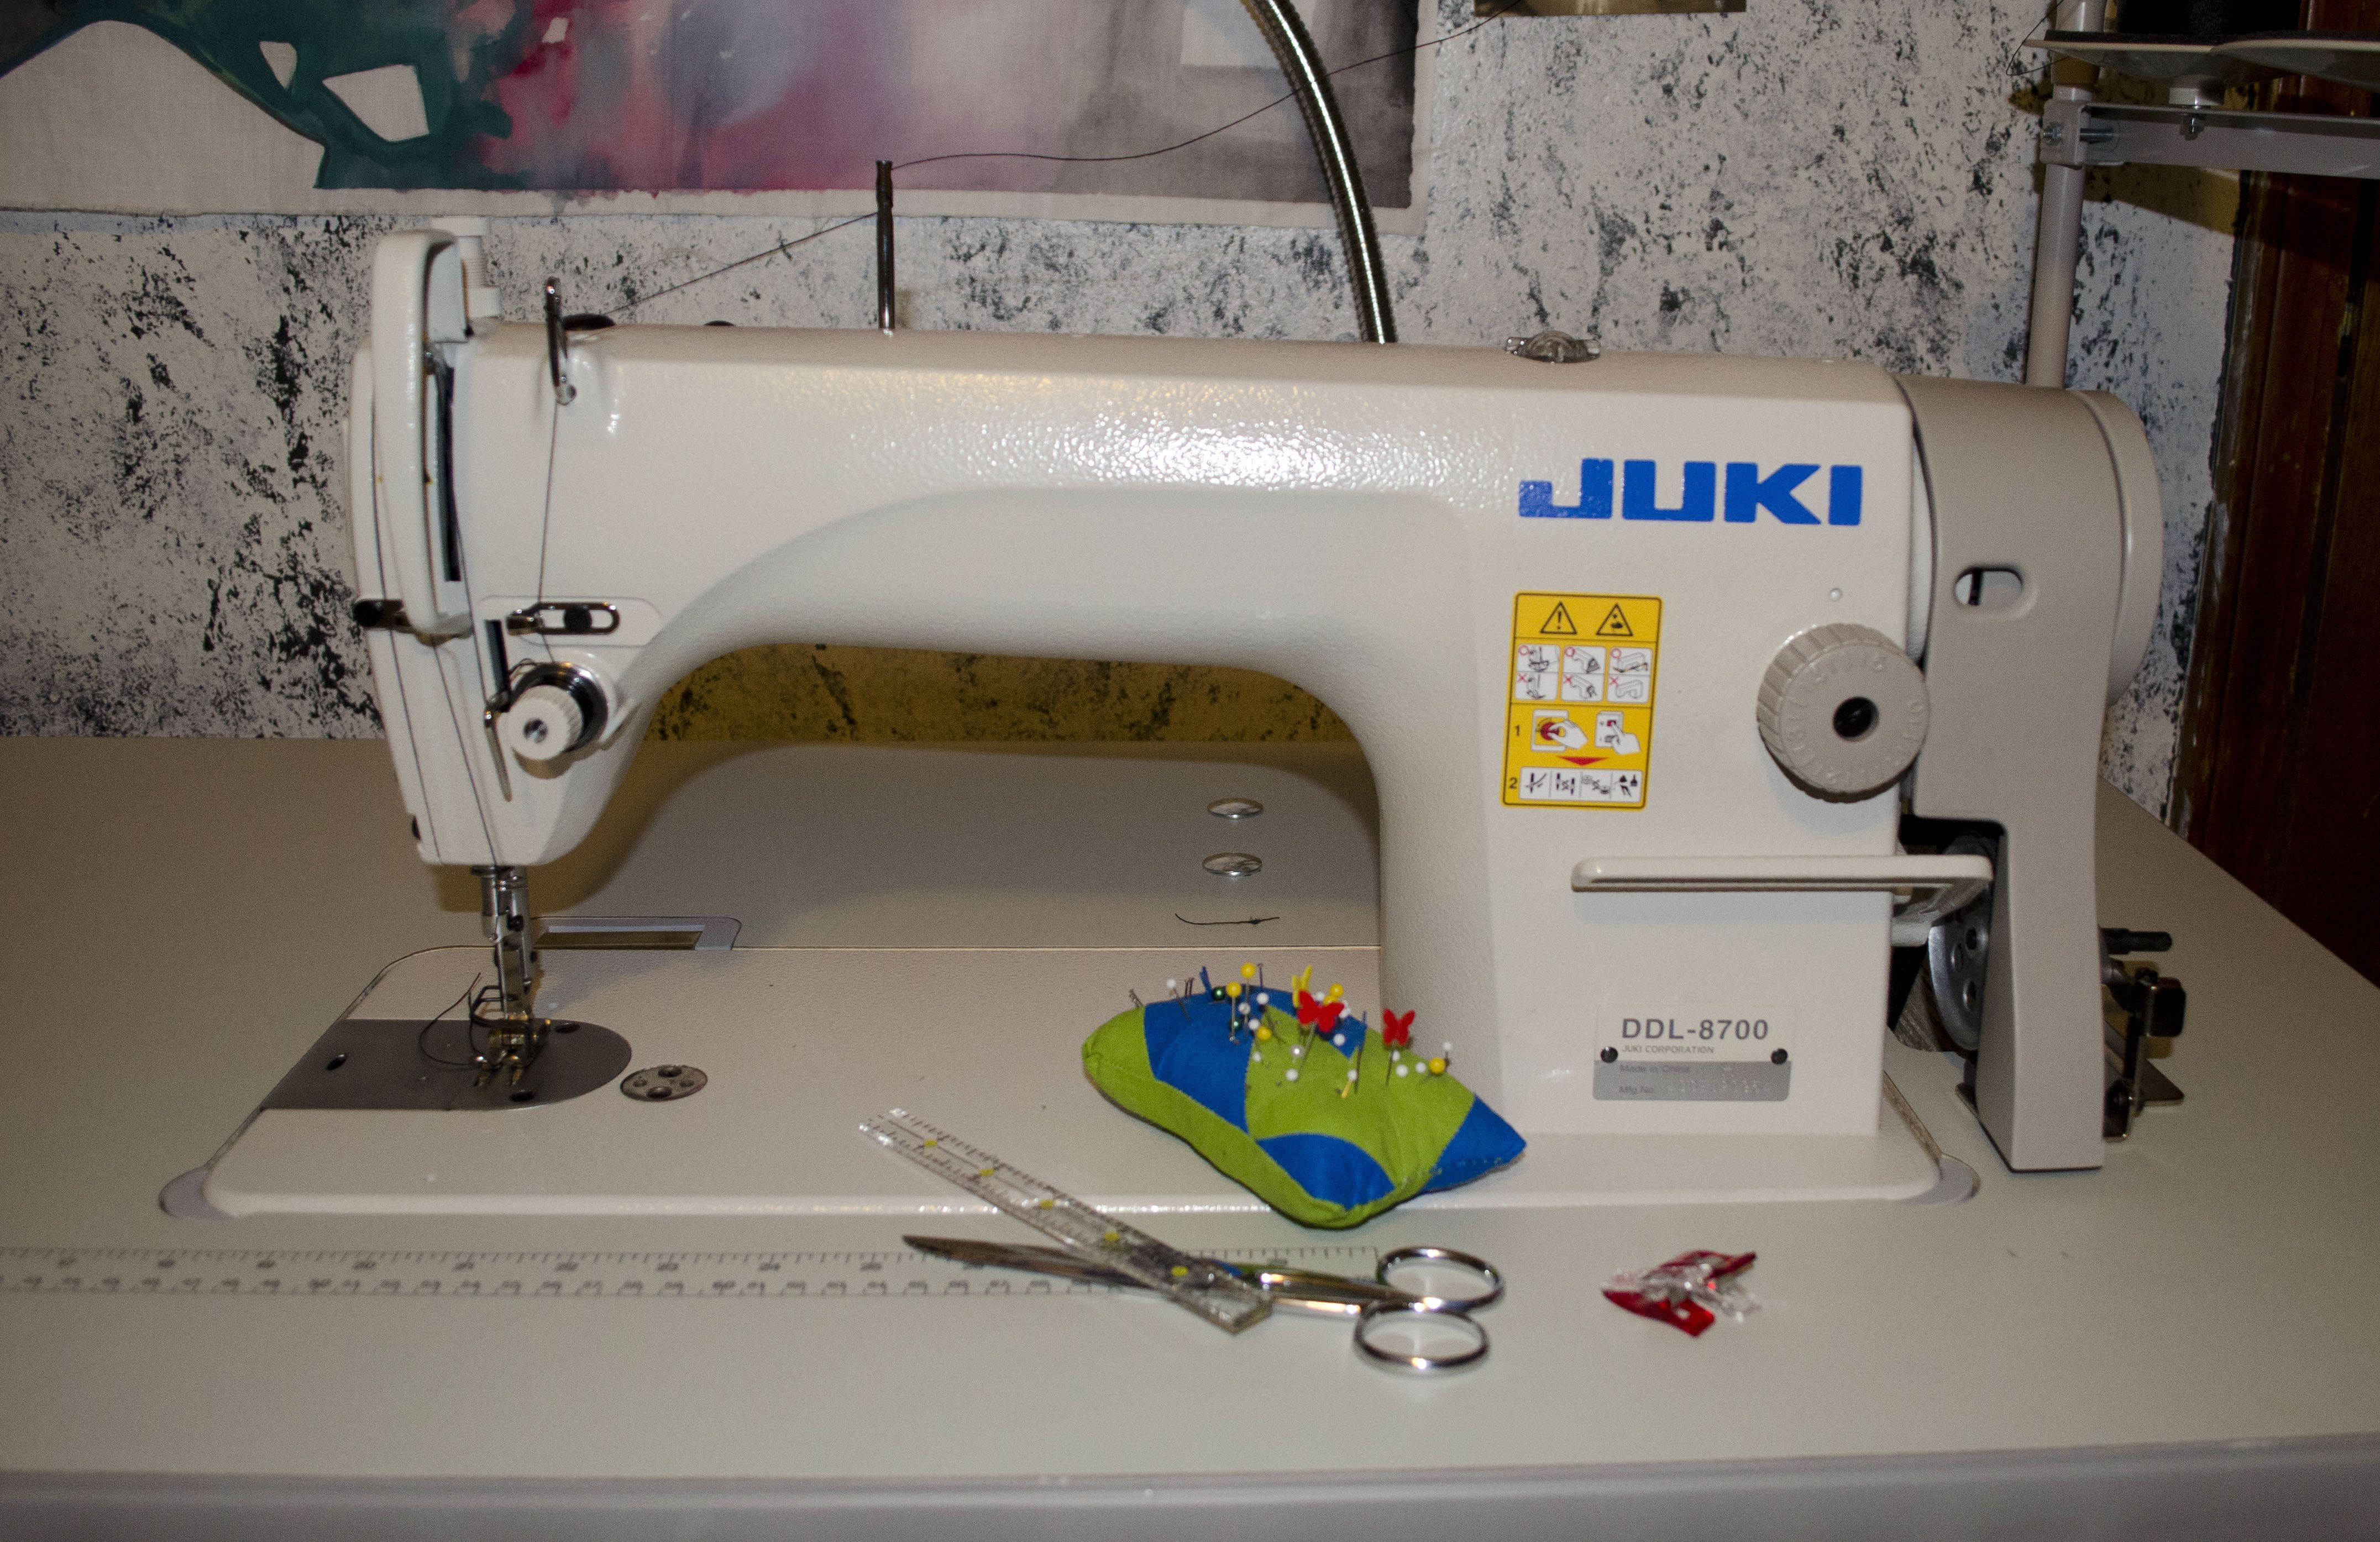 Juki8700H Juki, Sewing Machines, Sew, Sewing Sleeves